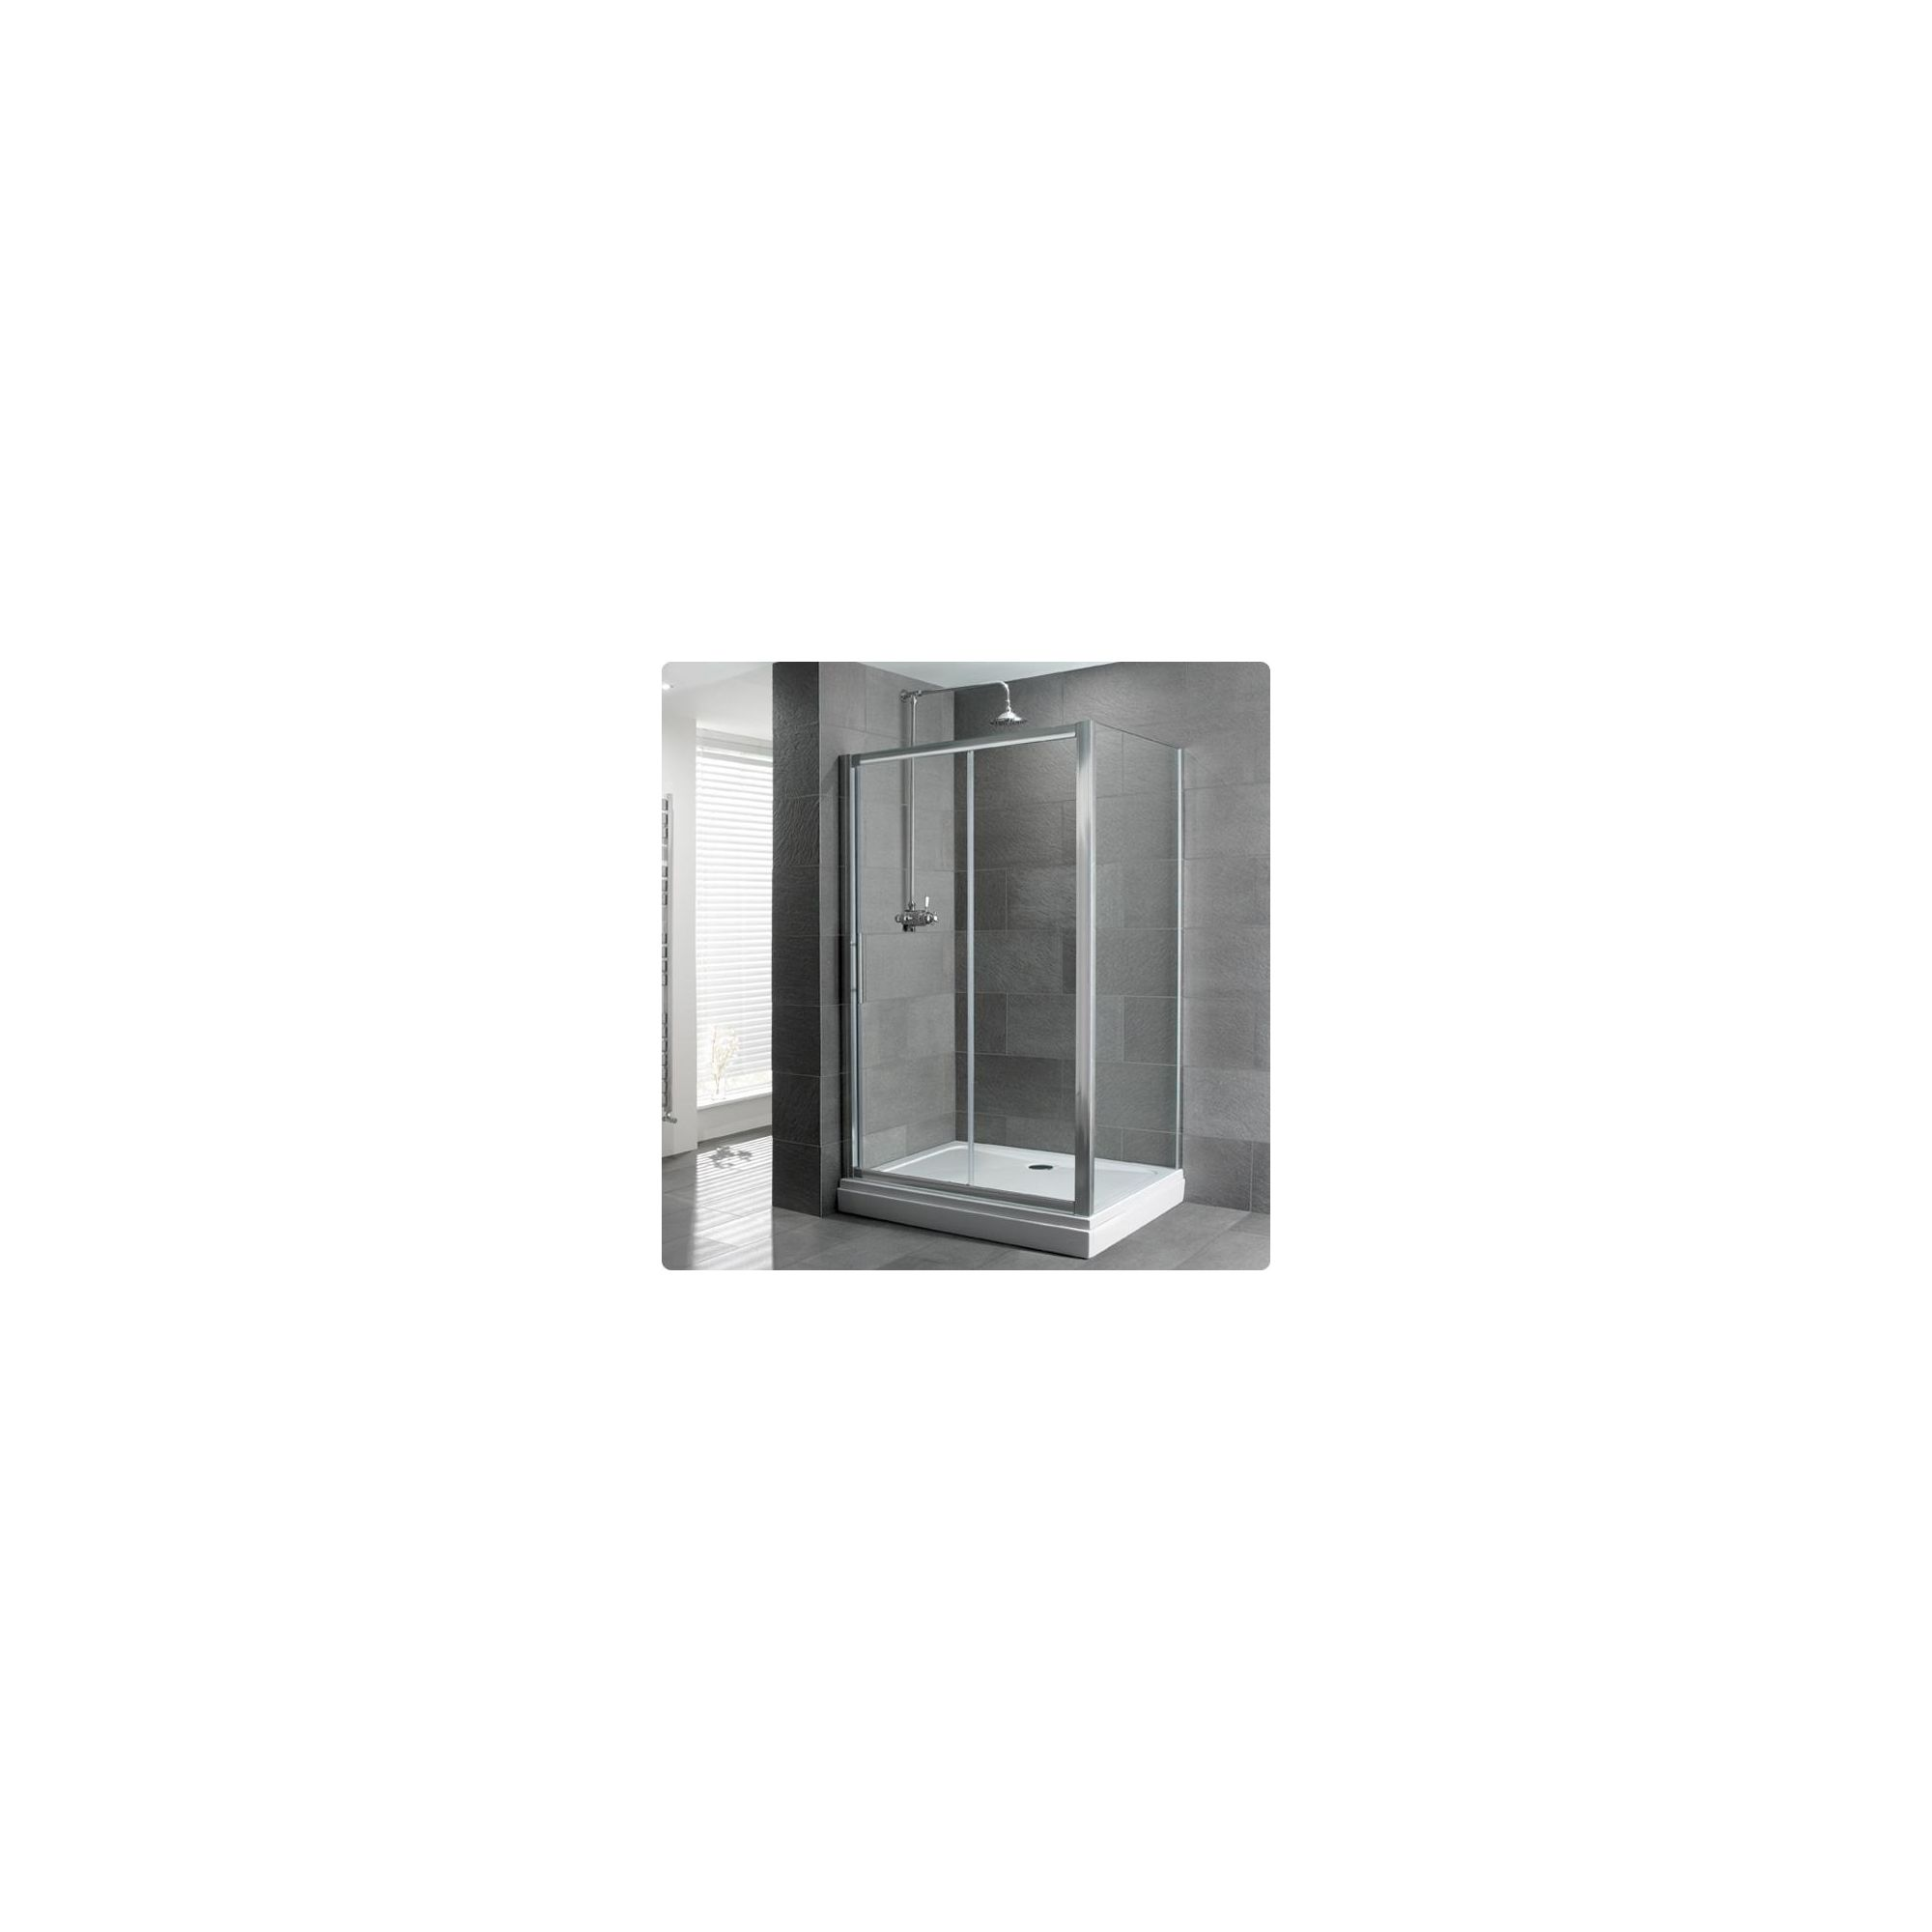 Duchy Select Silver Single Sliding Door Shower Enclosure, 1100mm x 760mm, Standard Tray, 6mm Glass at Tesco Direct